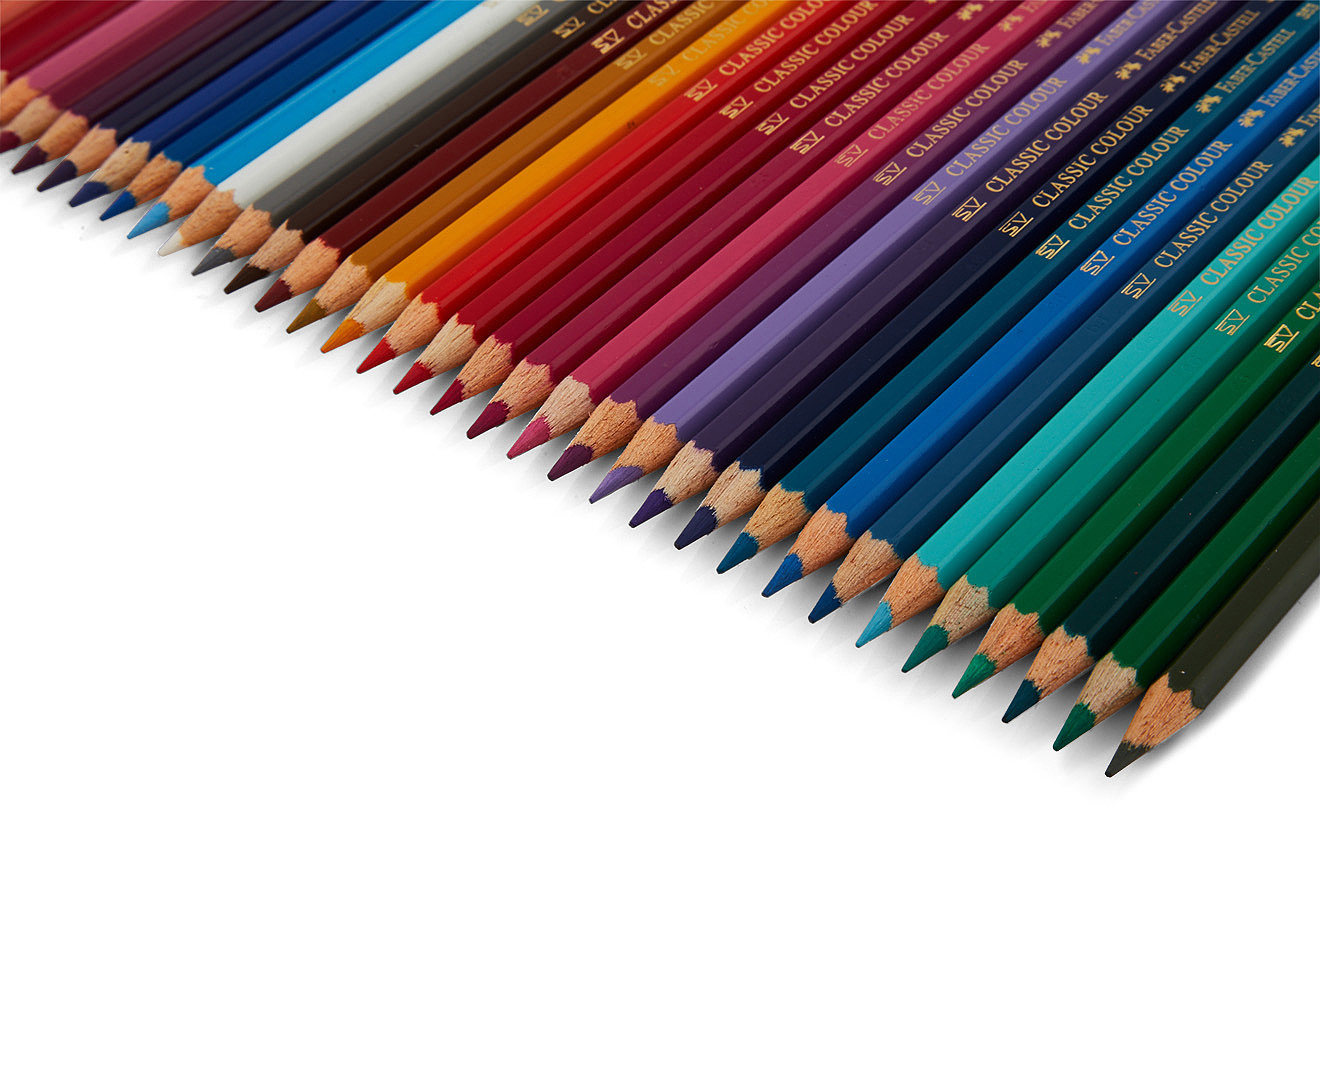 fabercastell 48 classic colour pencils  magical cities